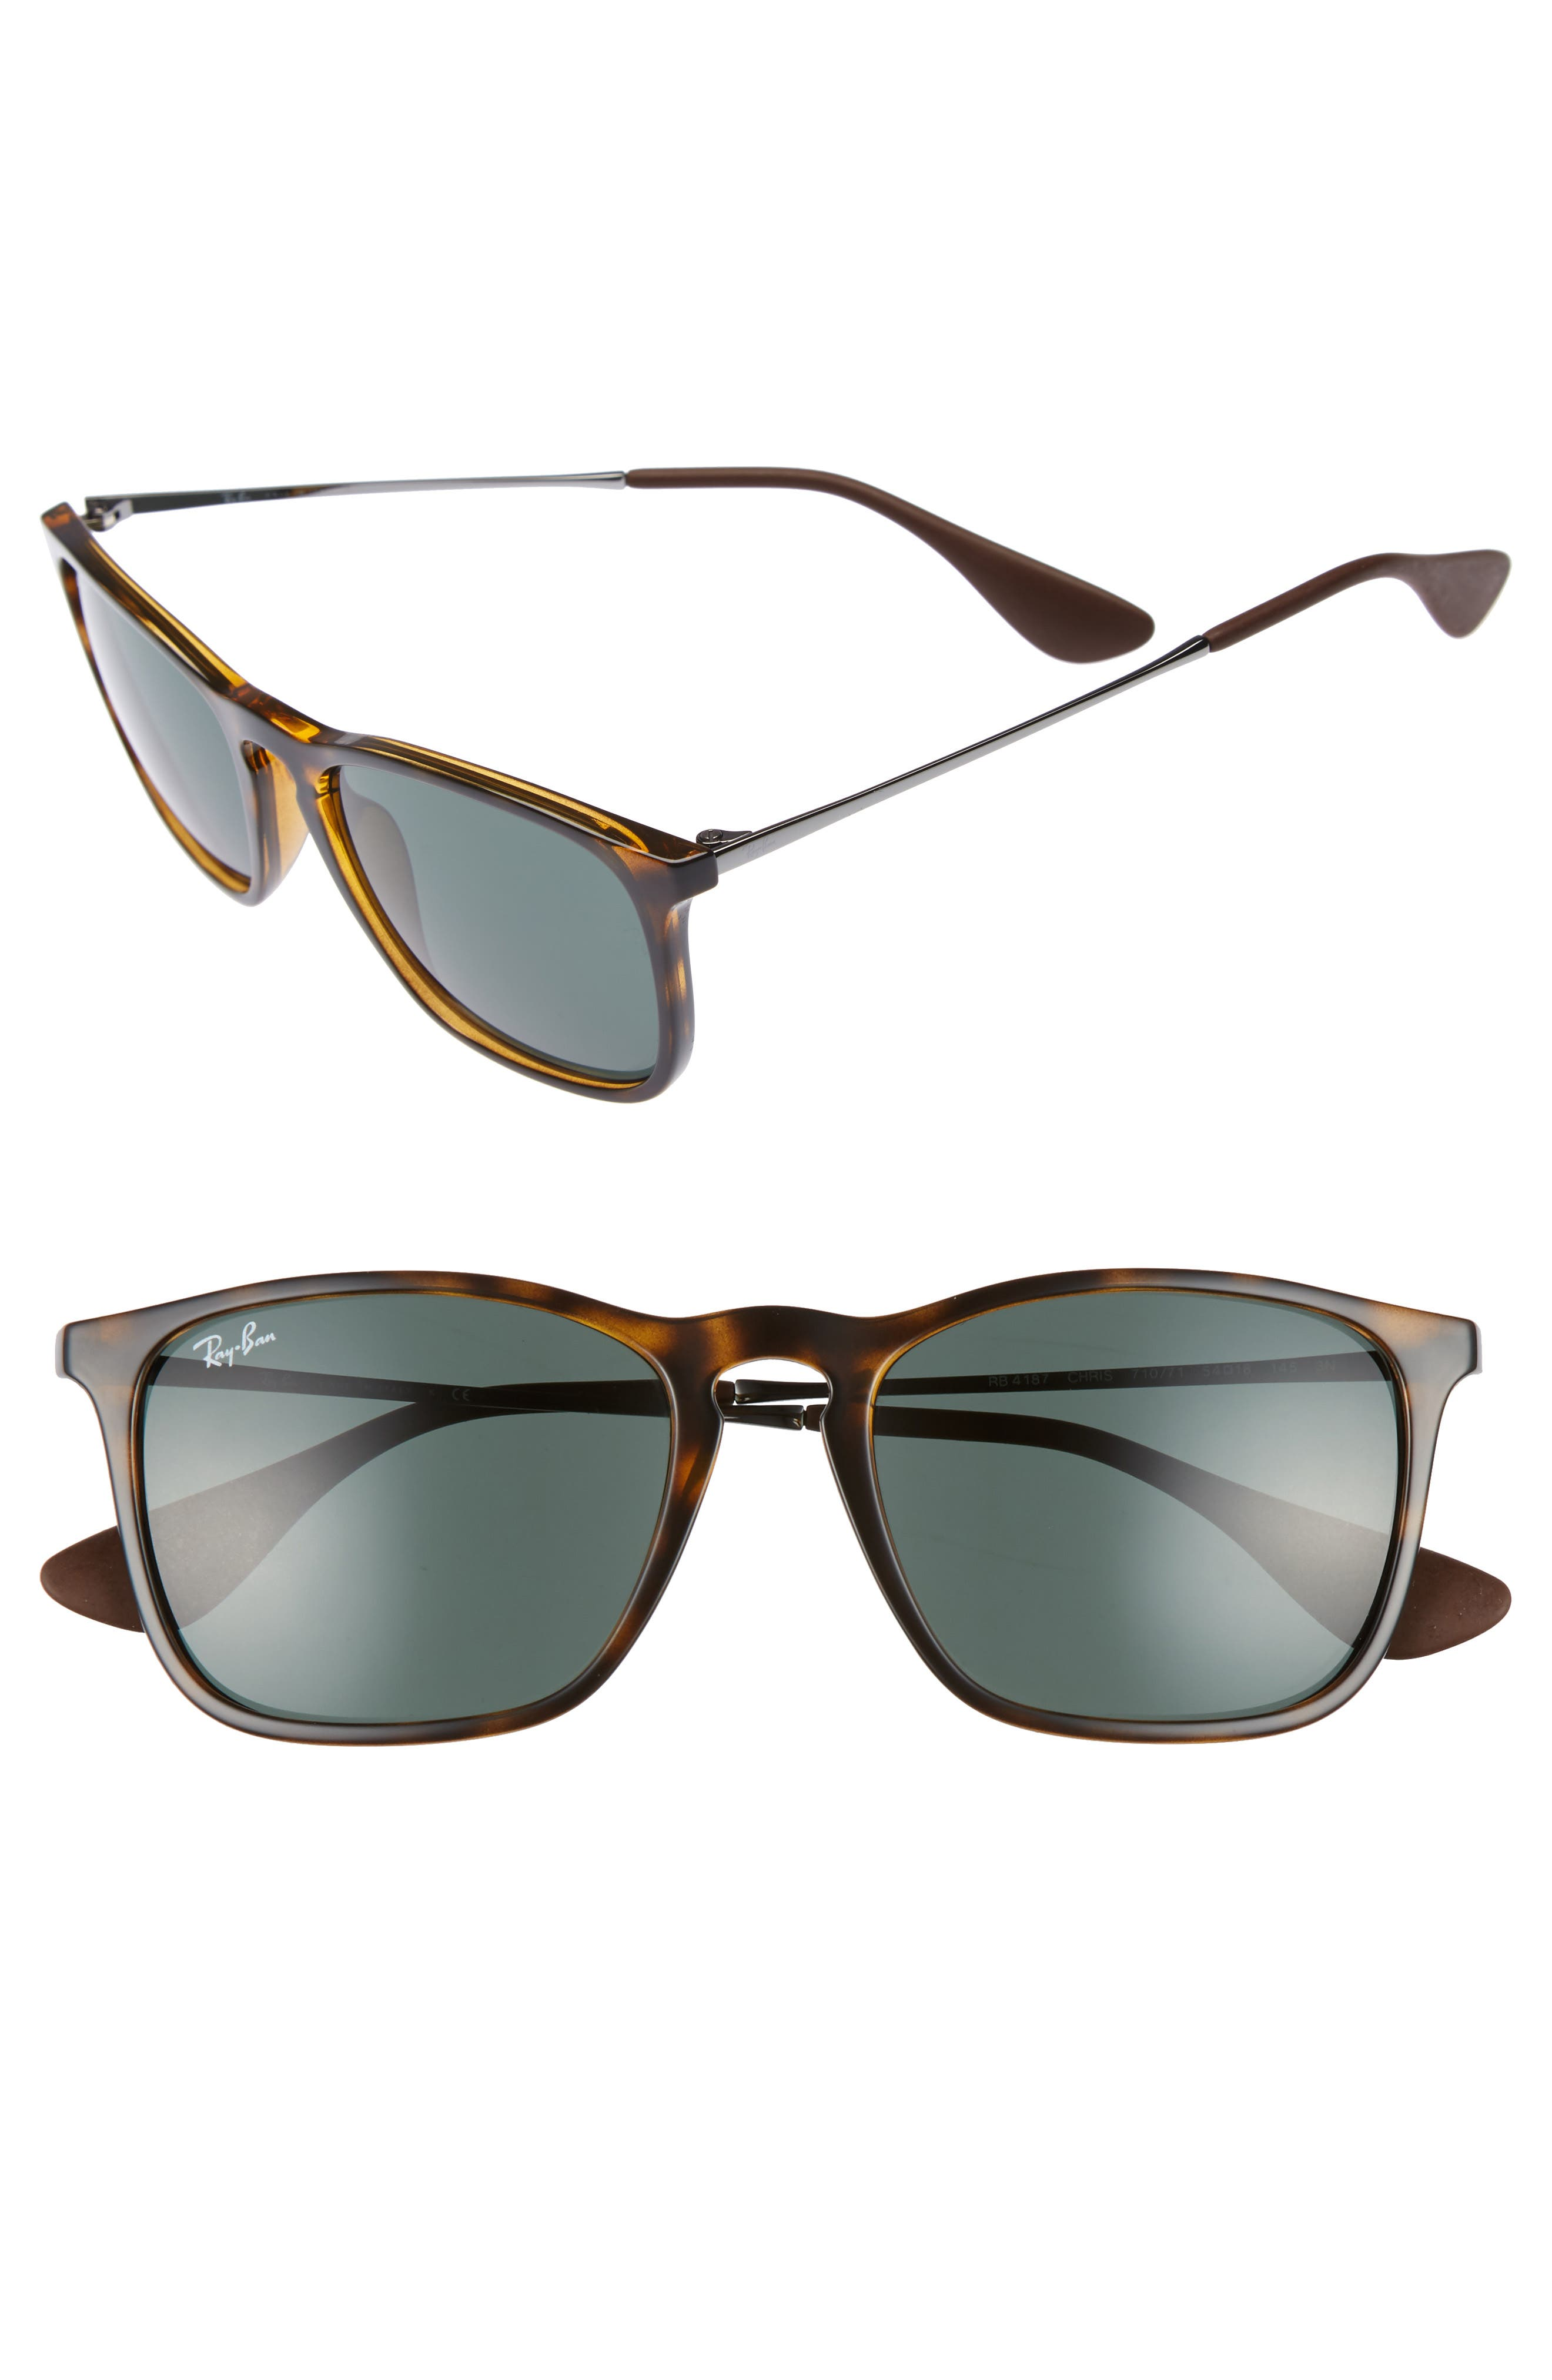 54mm Sunglasses,                         Main,                         color, LIGHT HAVANA